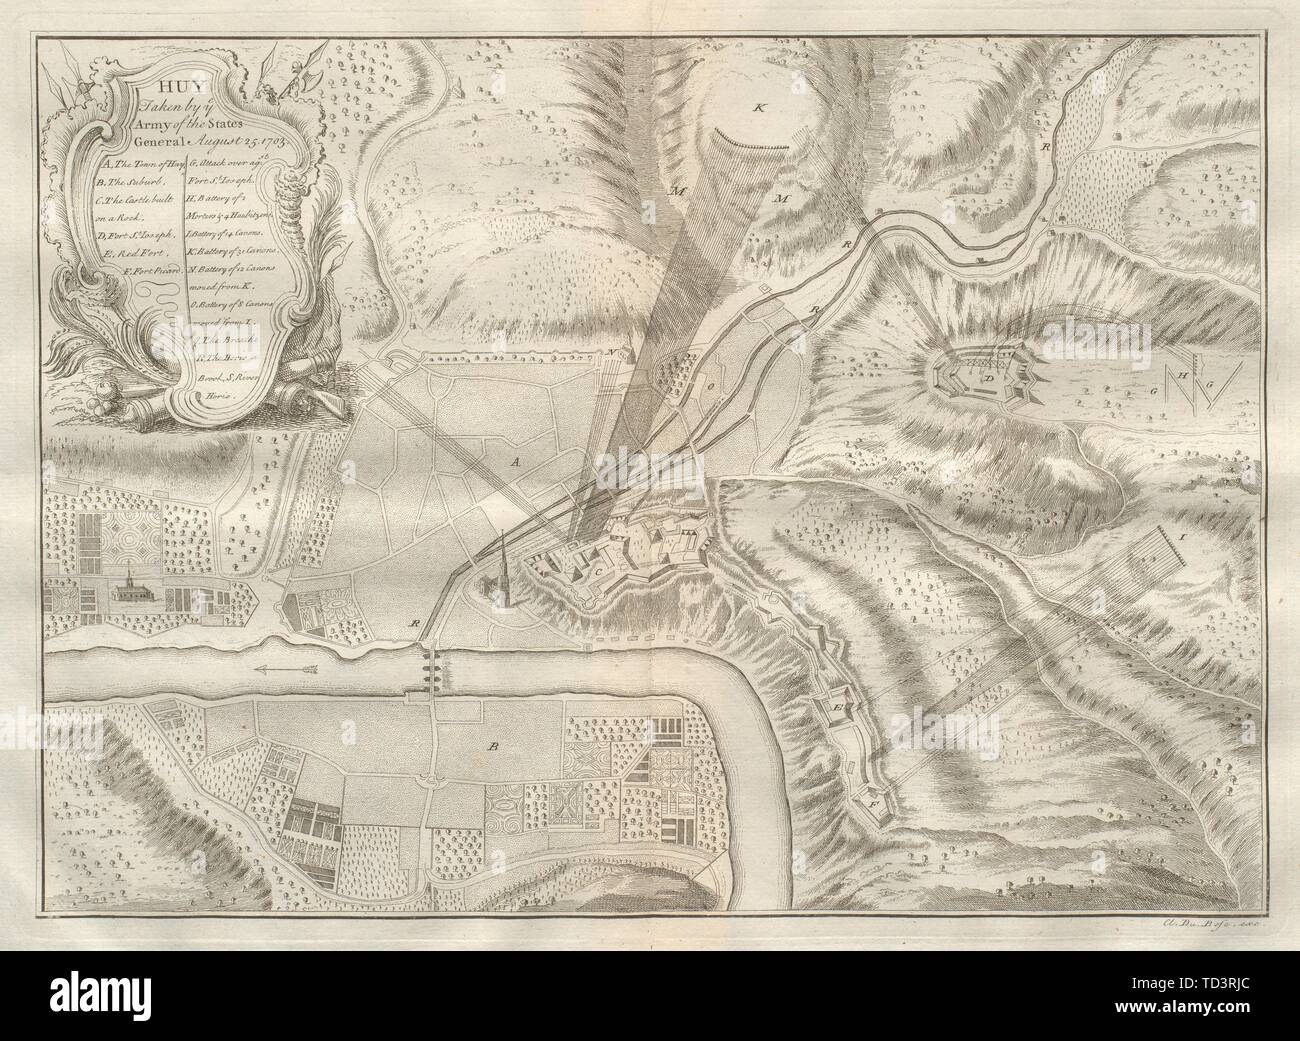 Huy taken by ye Army of the States General. 1703. Belgium. DU BOSC 1736 map - Stock Image